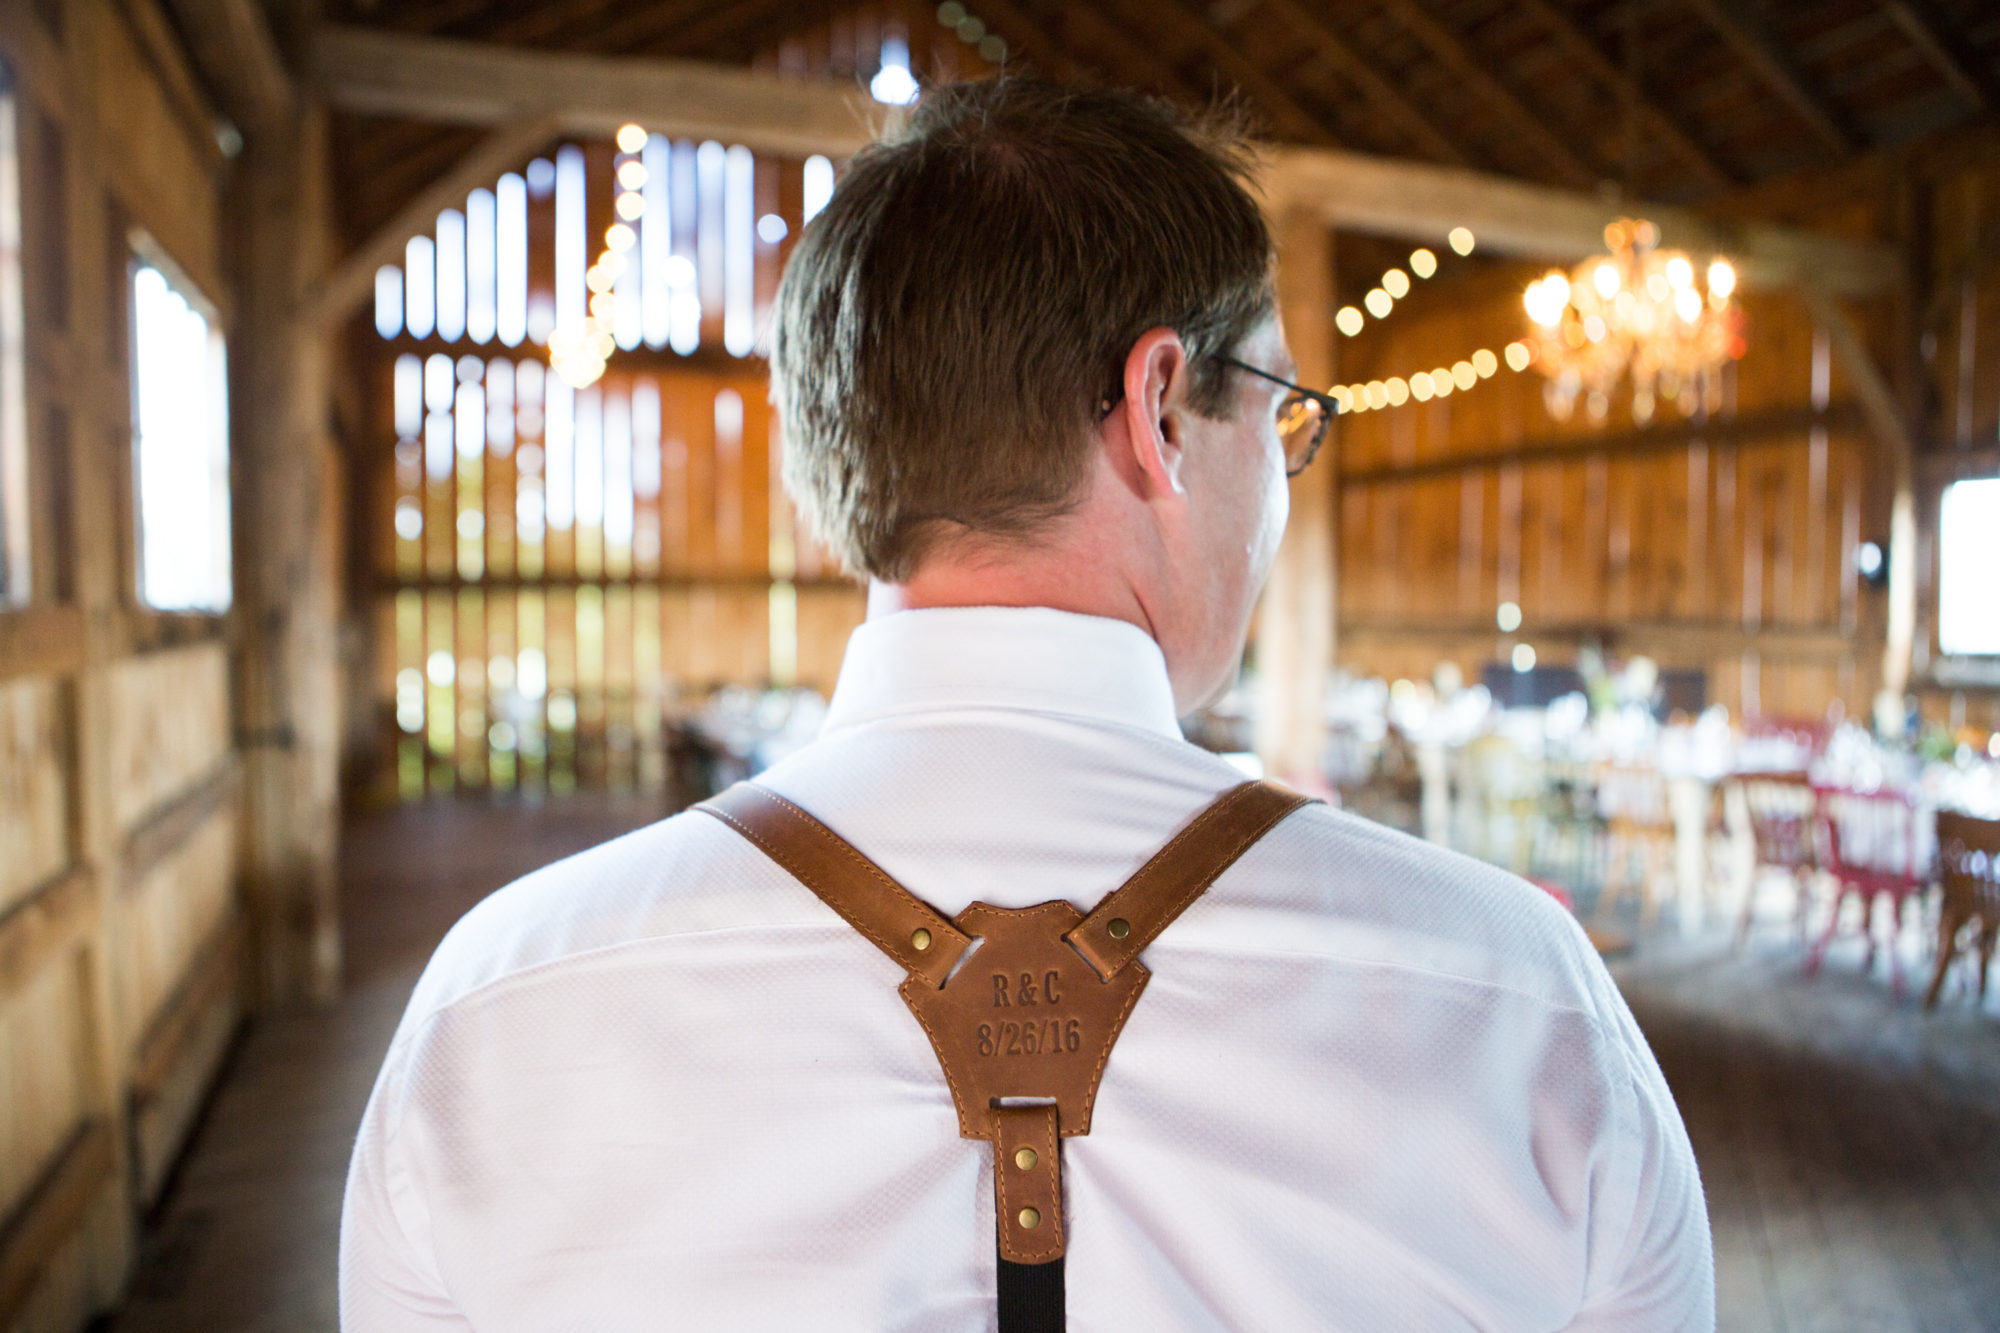 Groom Leather Suspenders South Pond Farms Zsuzsi Pal Photography Wedding